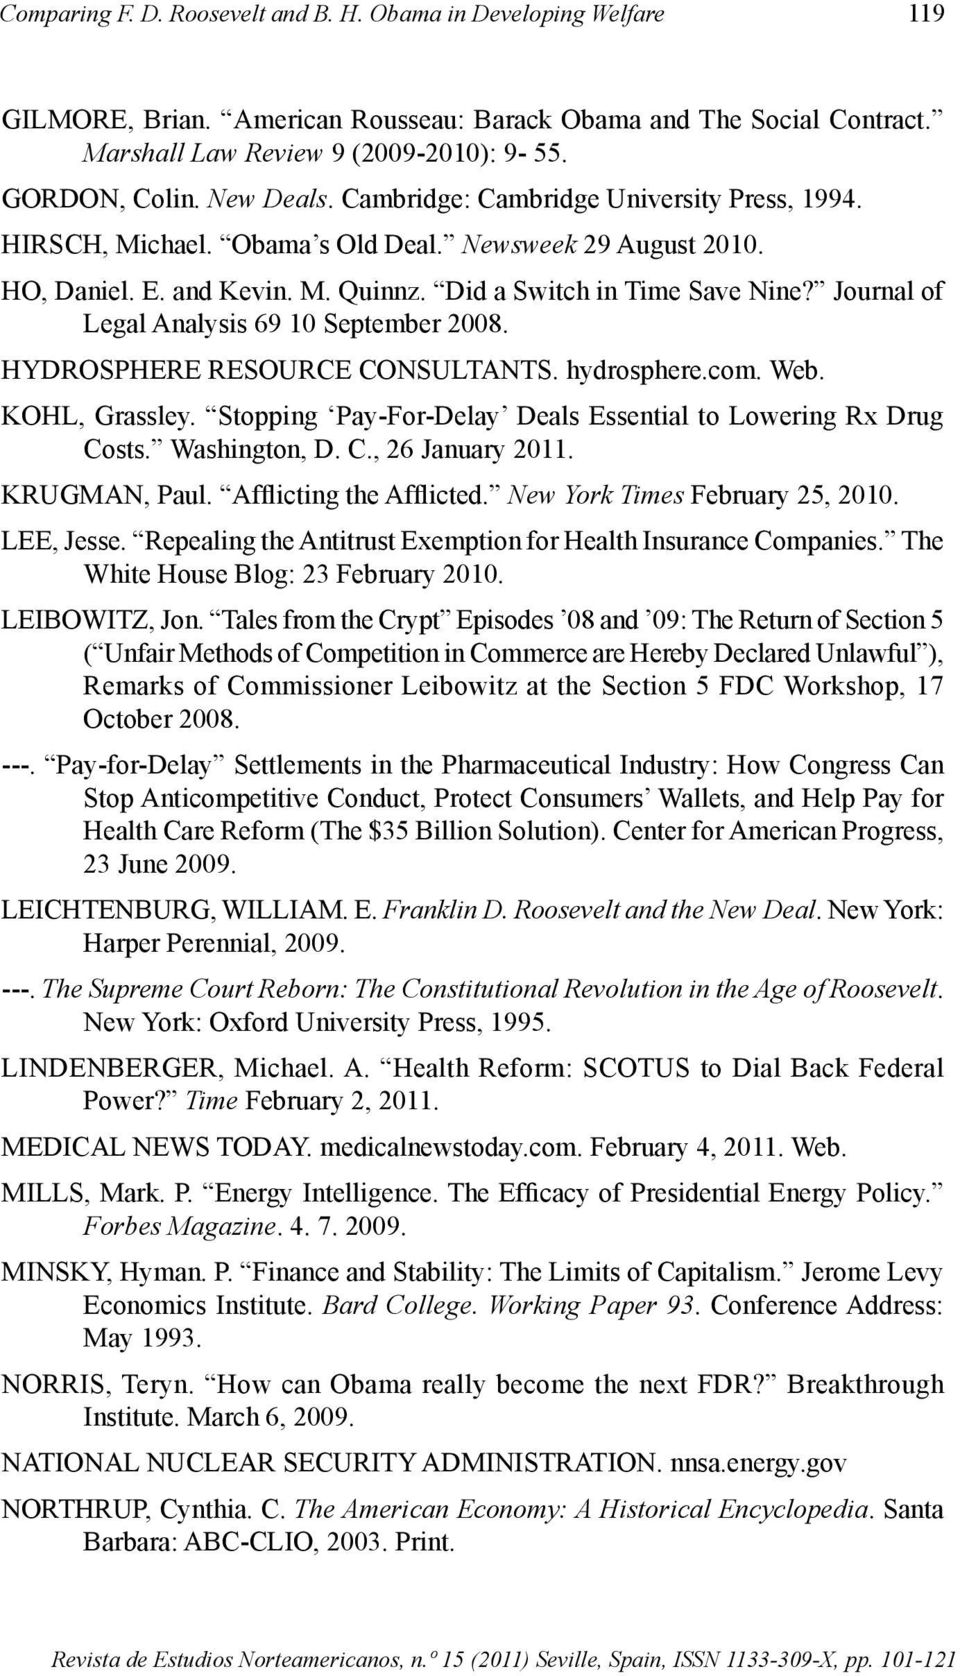 Journal of Legal Analysis 69 10 September 2008. HYDROSPHERE RESOURCE CONSULTANTS. hydrosphere.com. Web. KOHL, Grassley. Stopping Pay-For-Delay Deals Essential to Lowering Rx Drug Costs. Washington, D.